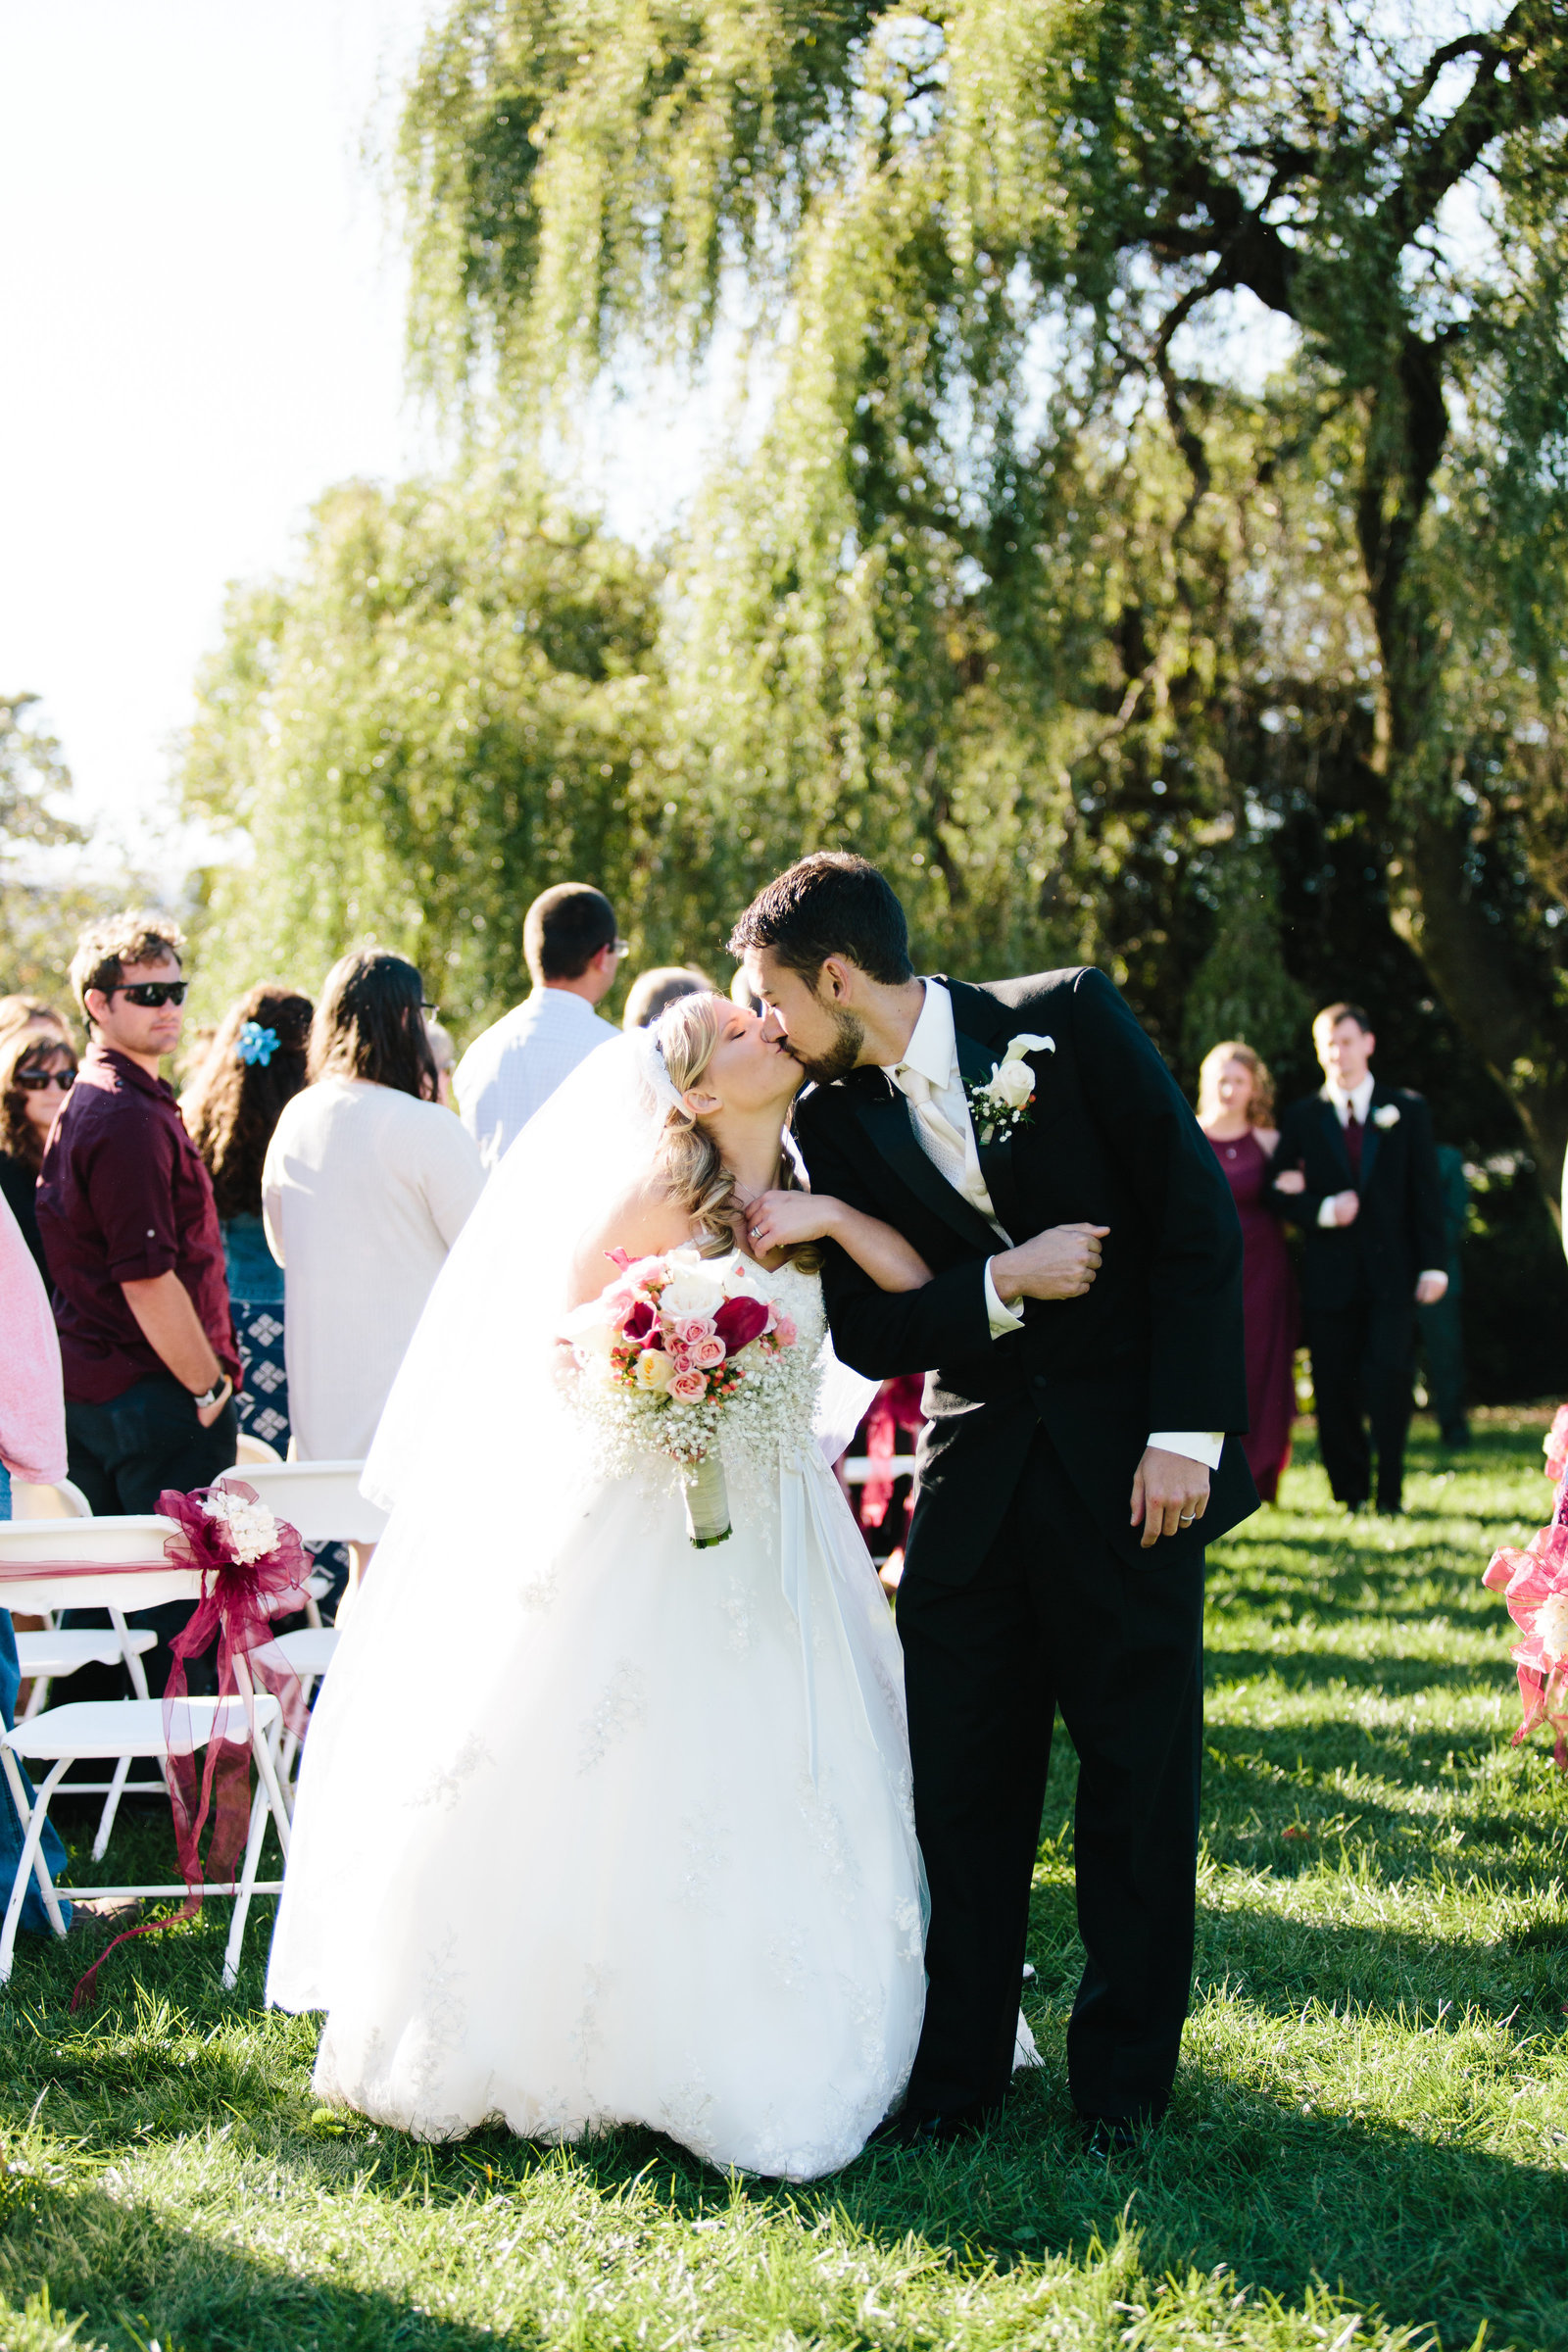 Outdoor ceremony in Central, Ohio at the Quailcrest Farm by Austin and Rachel Photography